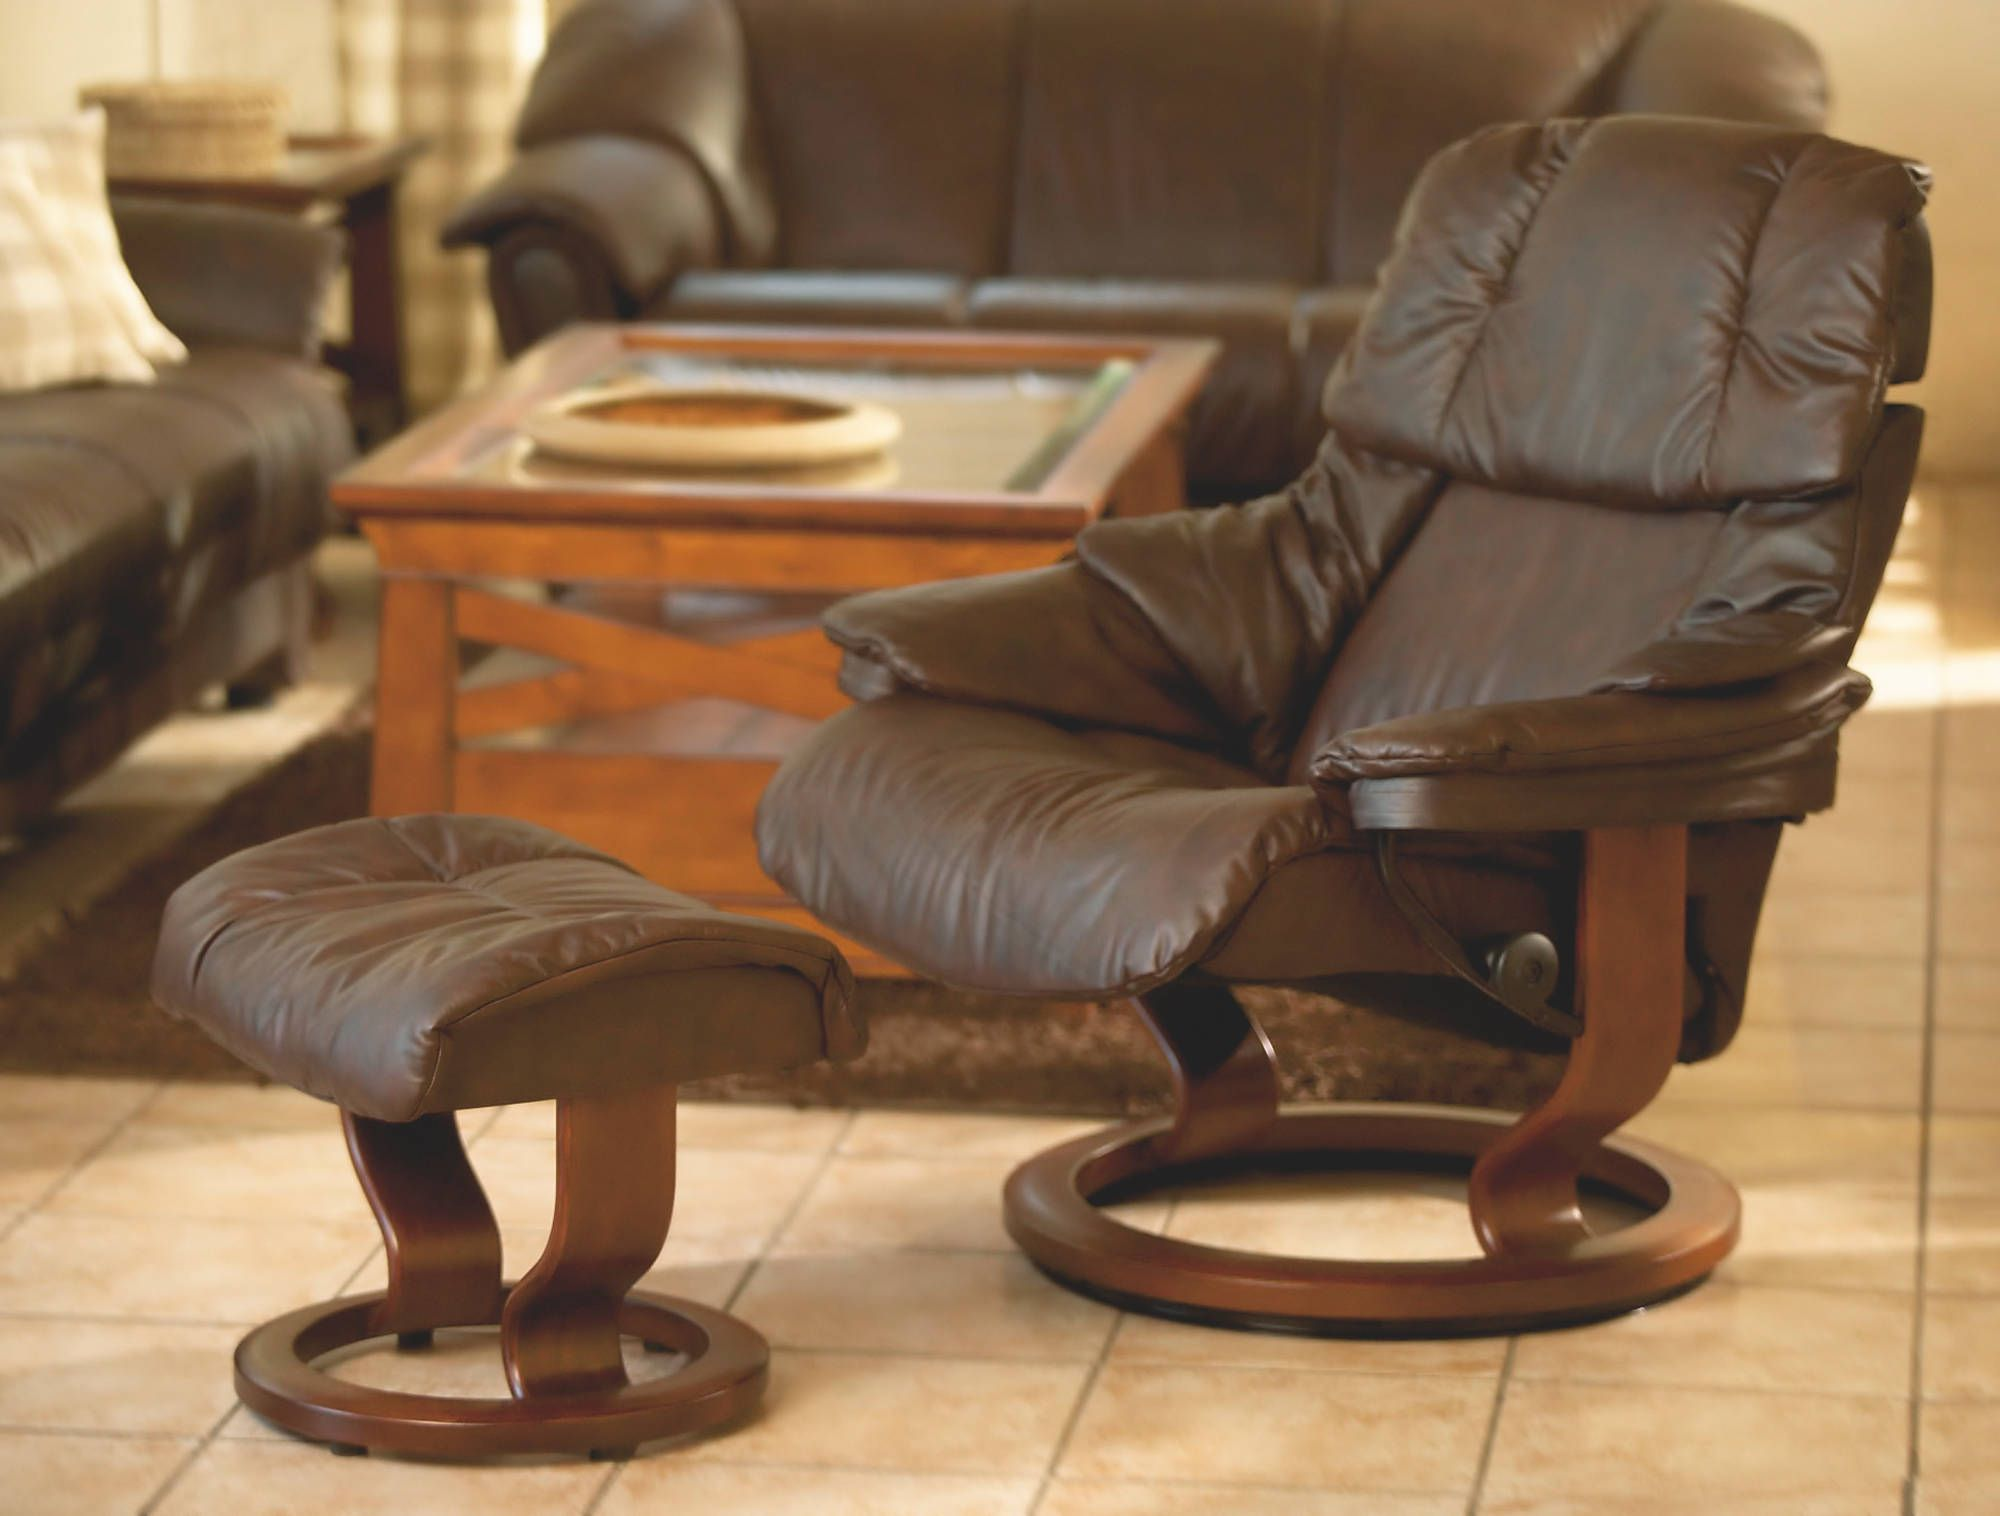 Stressless Reno Recliner in Paloma Leather color Chocolate with